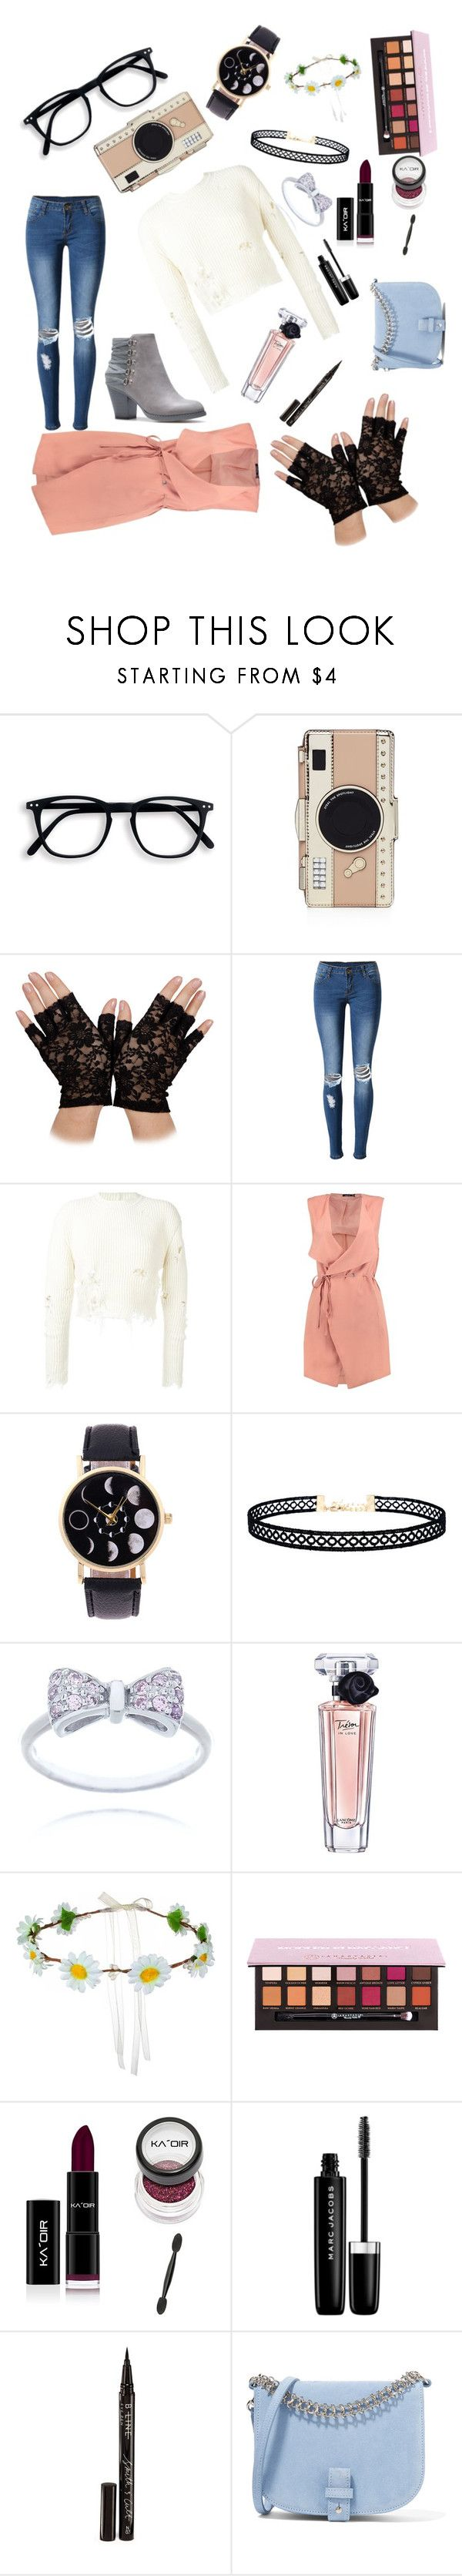 """Duster Coats-Daily"" by portzali ❤ liked on Polyvore featuring Kate Spade, WithChic, adidas Originals, Boohoo, LULUS, Lancôme, Marc Jacobs, Smith & Cult and Little Liffner"